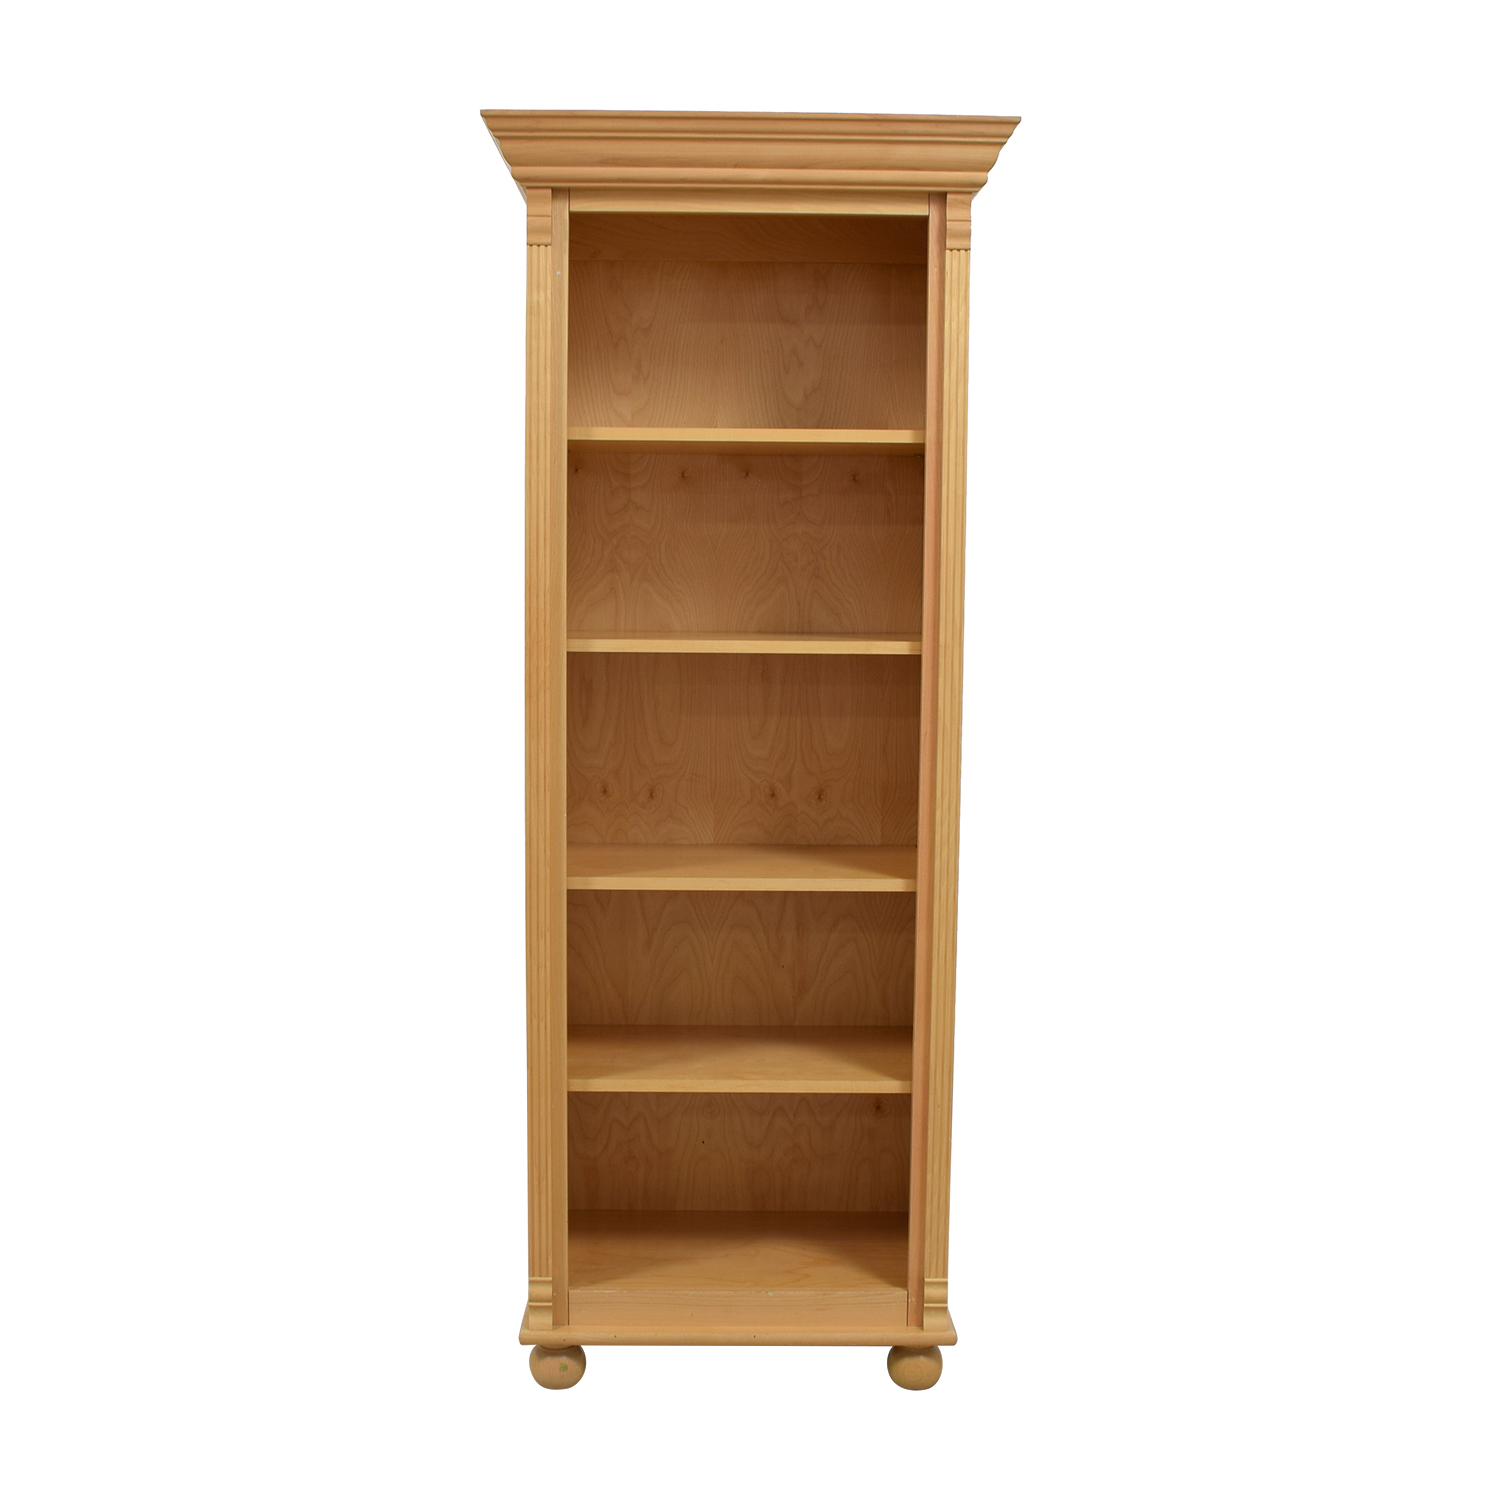 Bellini Bellini Natural Wood Bookcase Bookcases & Shelving